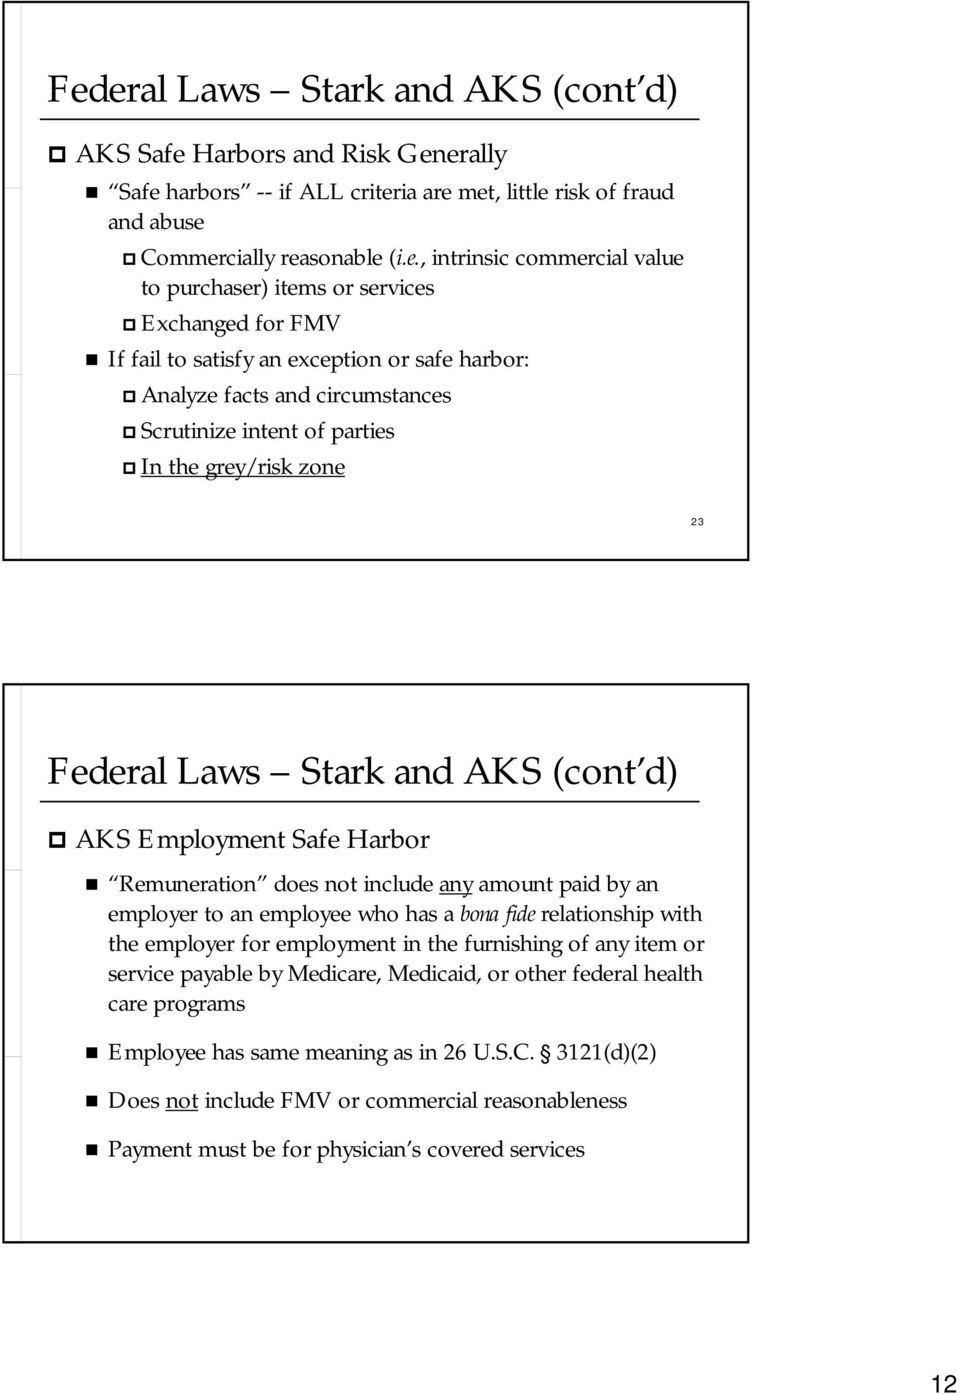 Laws Stark and AKS (cont d) AKS Employment Safe Harbor Remuneration does not include any amount paid by an employer to an employee who has a bona fide relationship with the employer for employment in